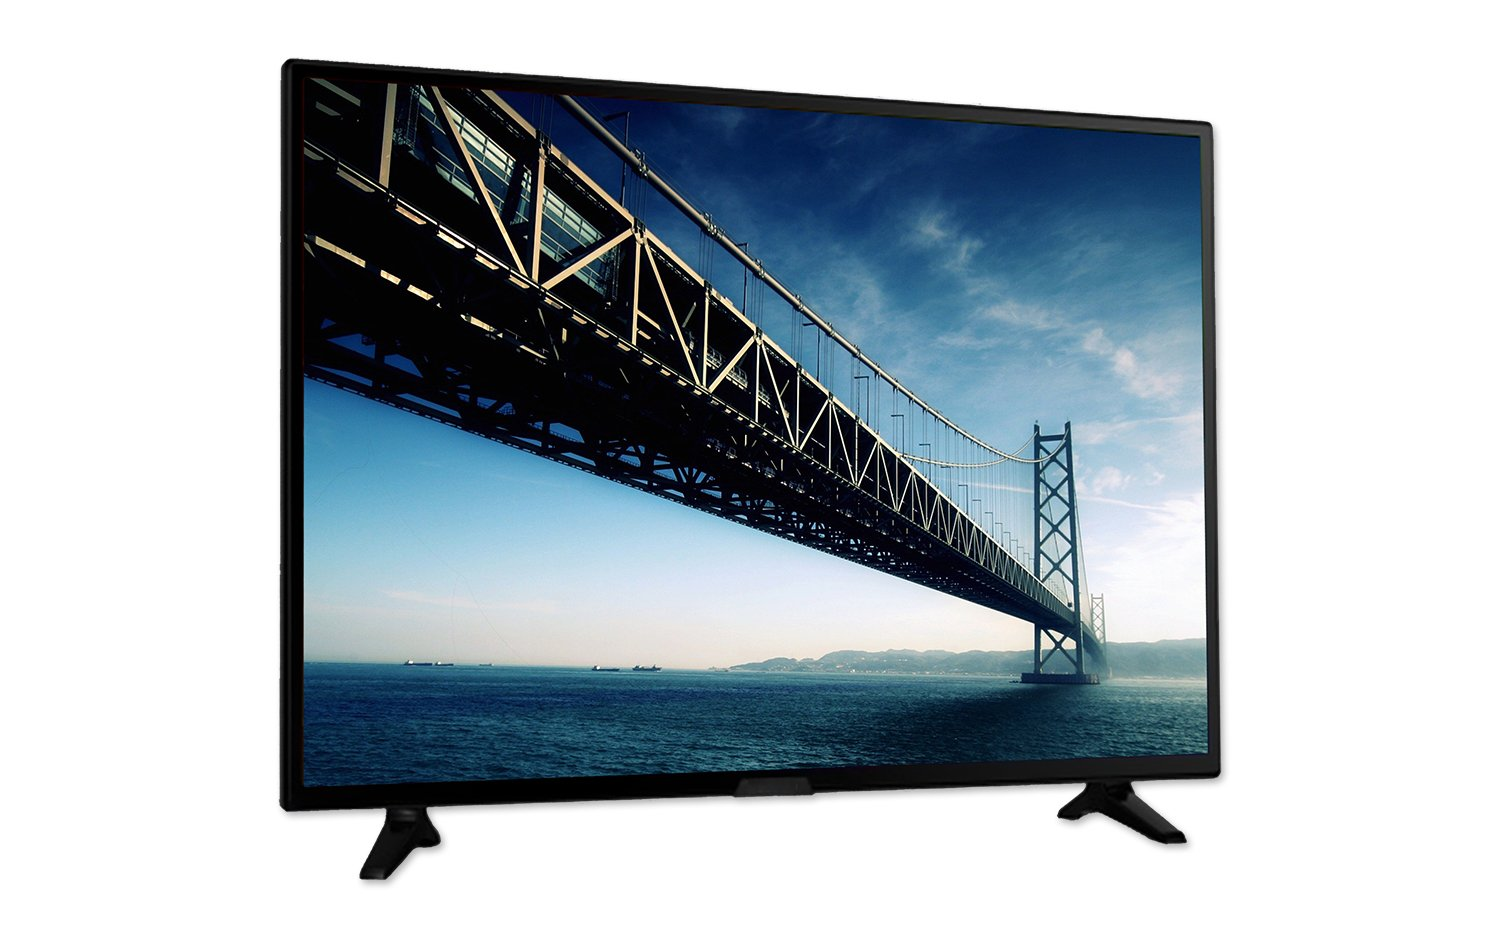 AVera by CEC 24AER10 24' Full HD 1080p LED TV